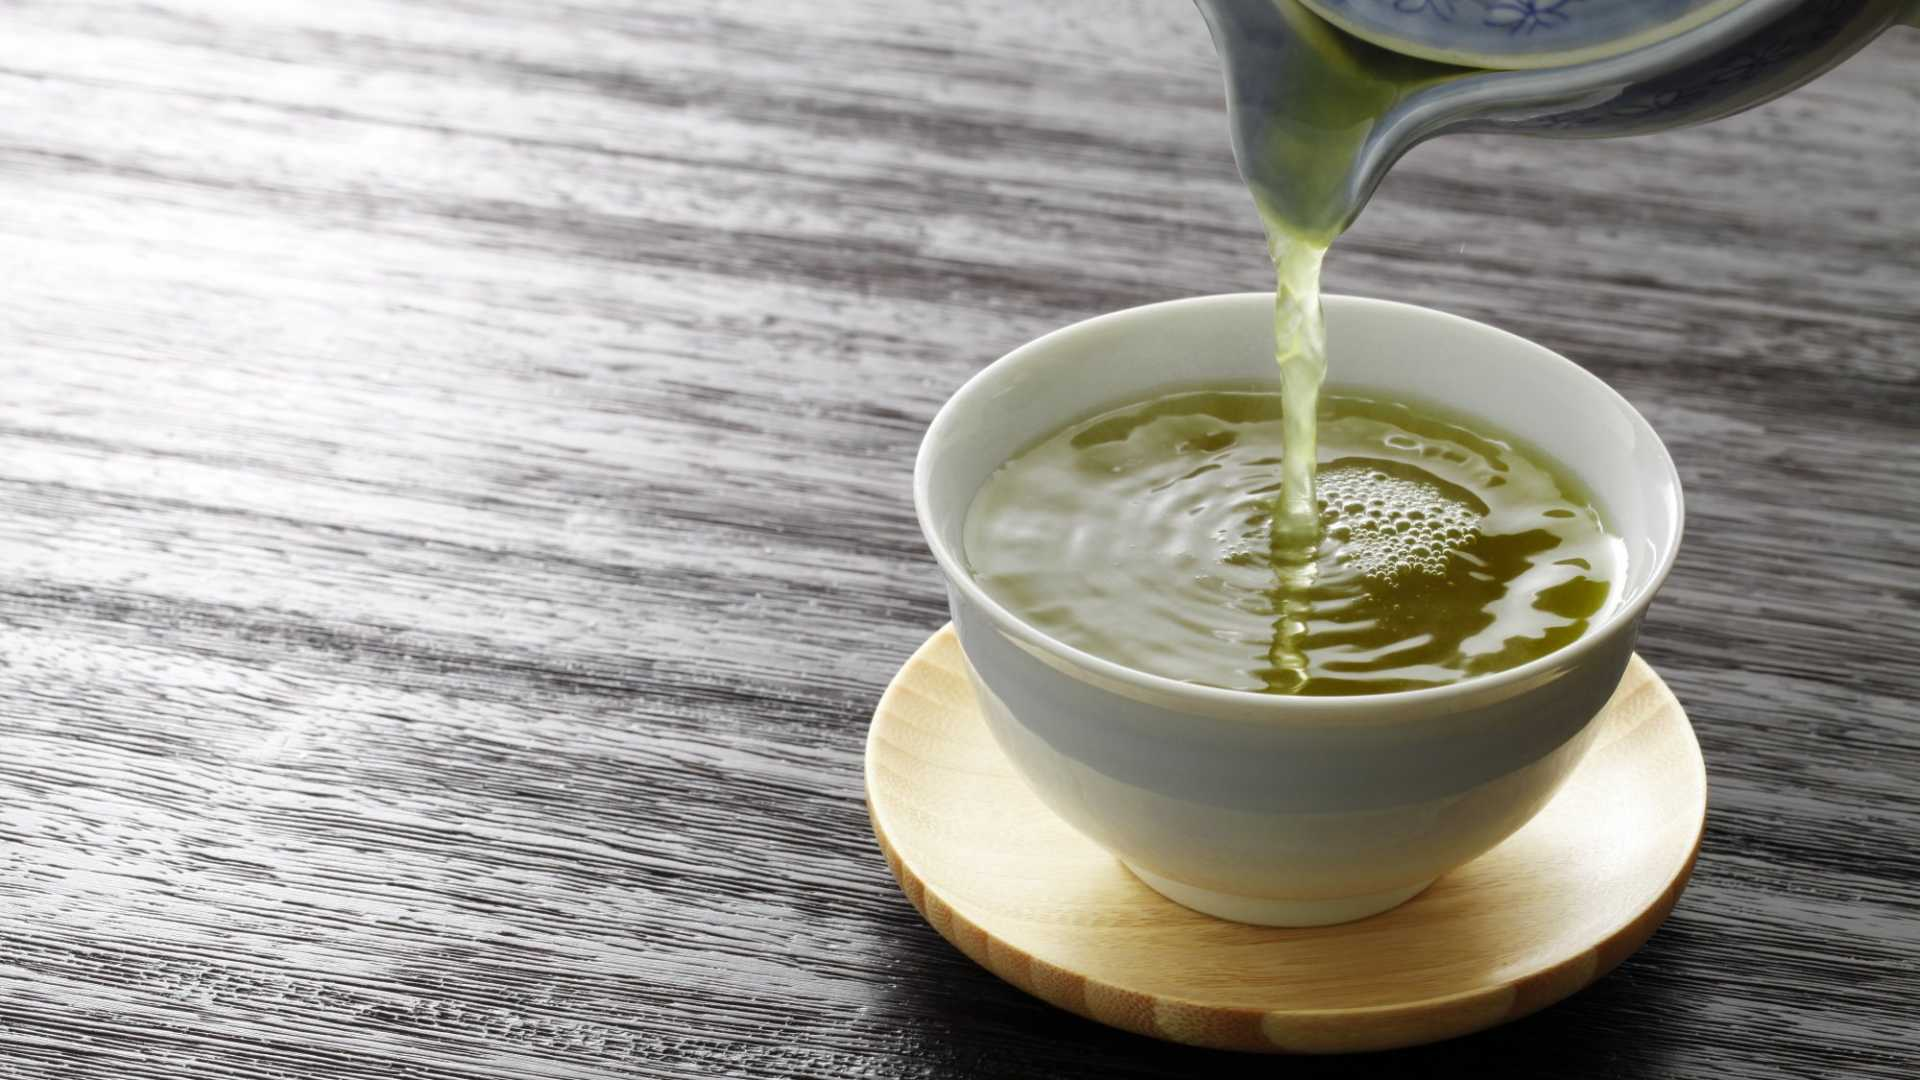 This 12-Year-Old's Science Project Is Helping to Fight Cancer--With Green Tea